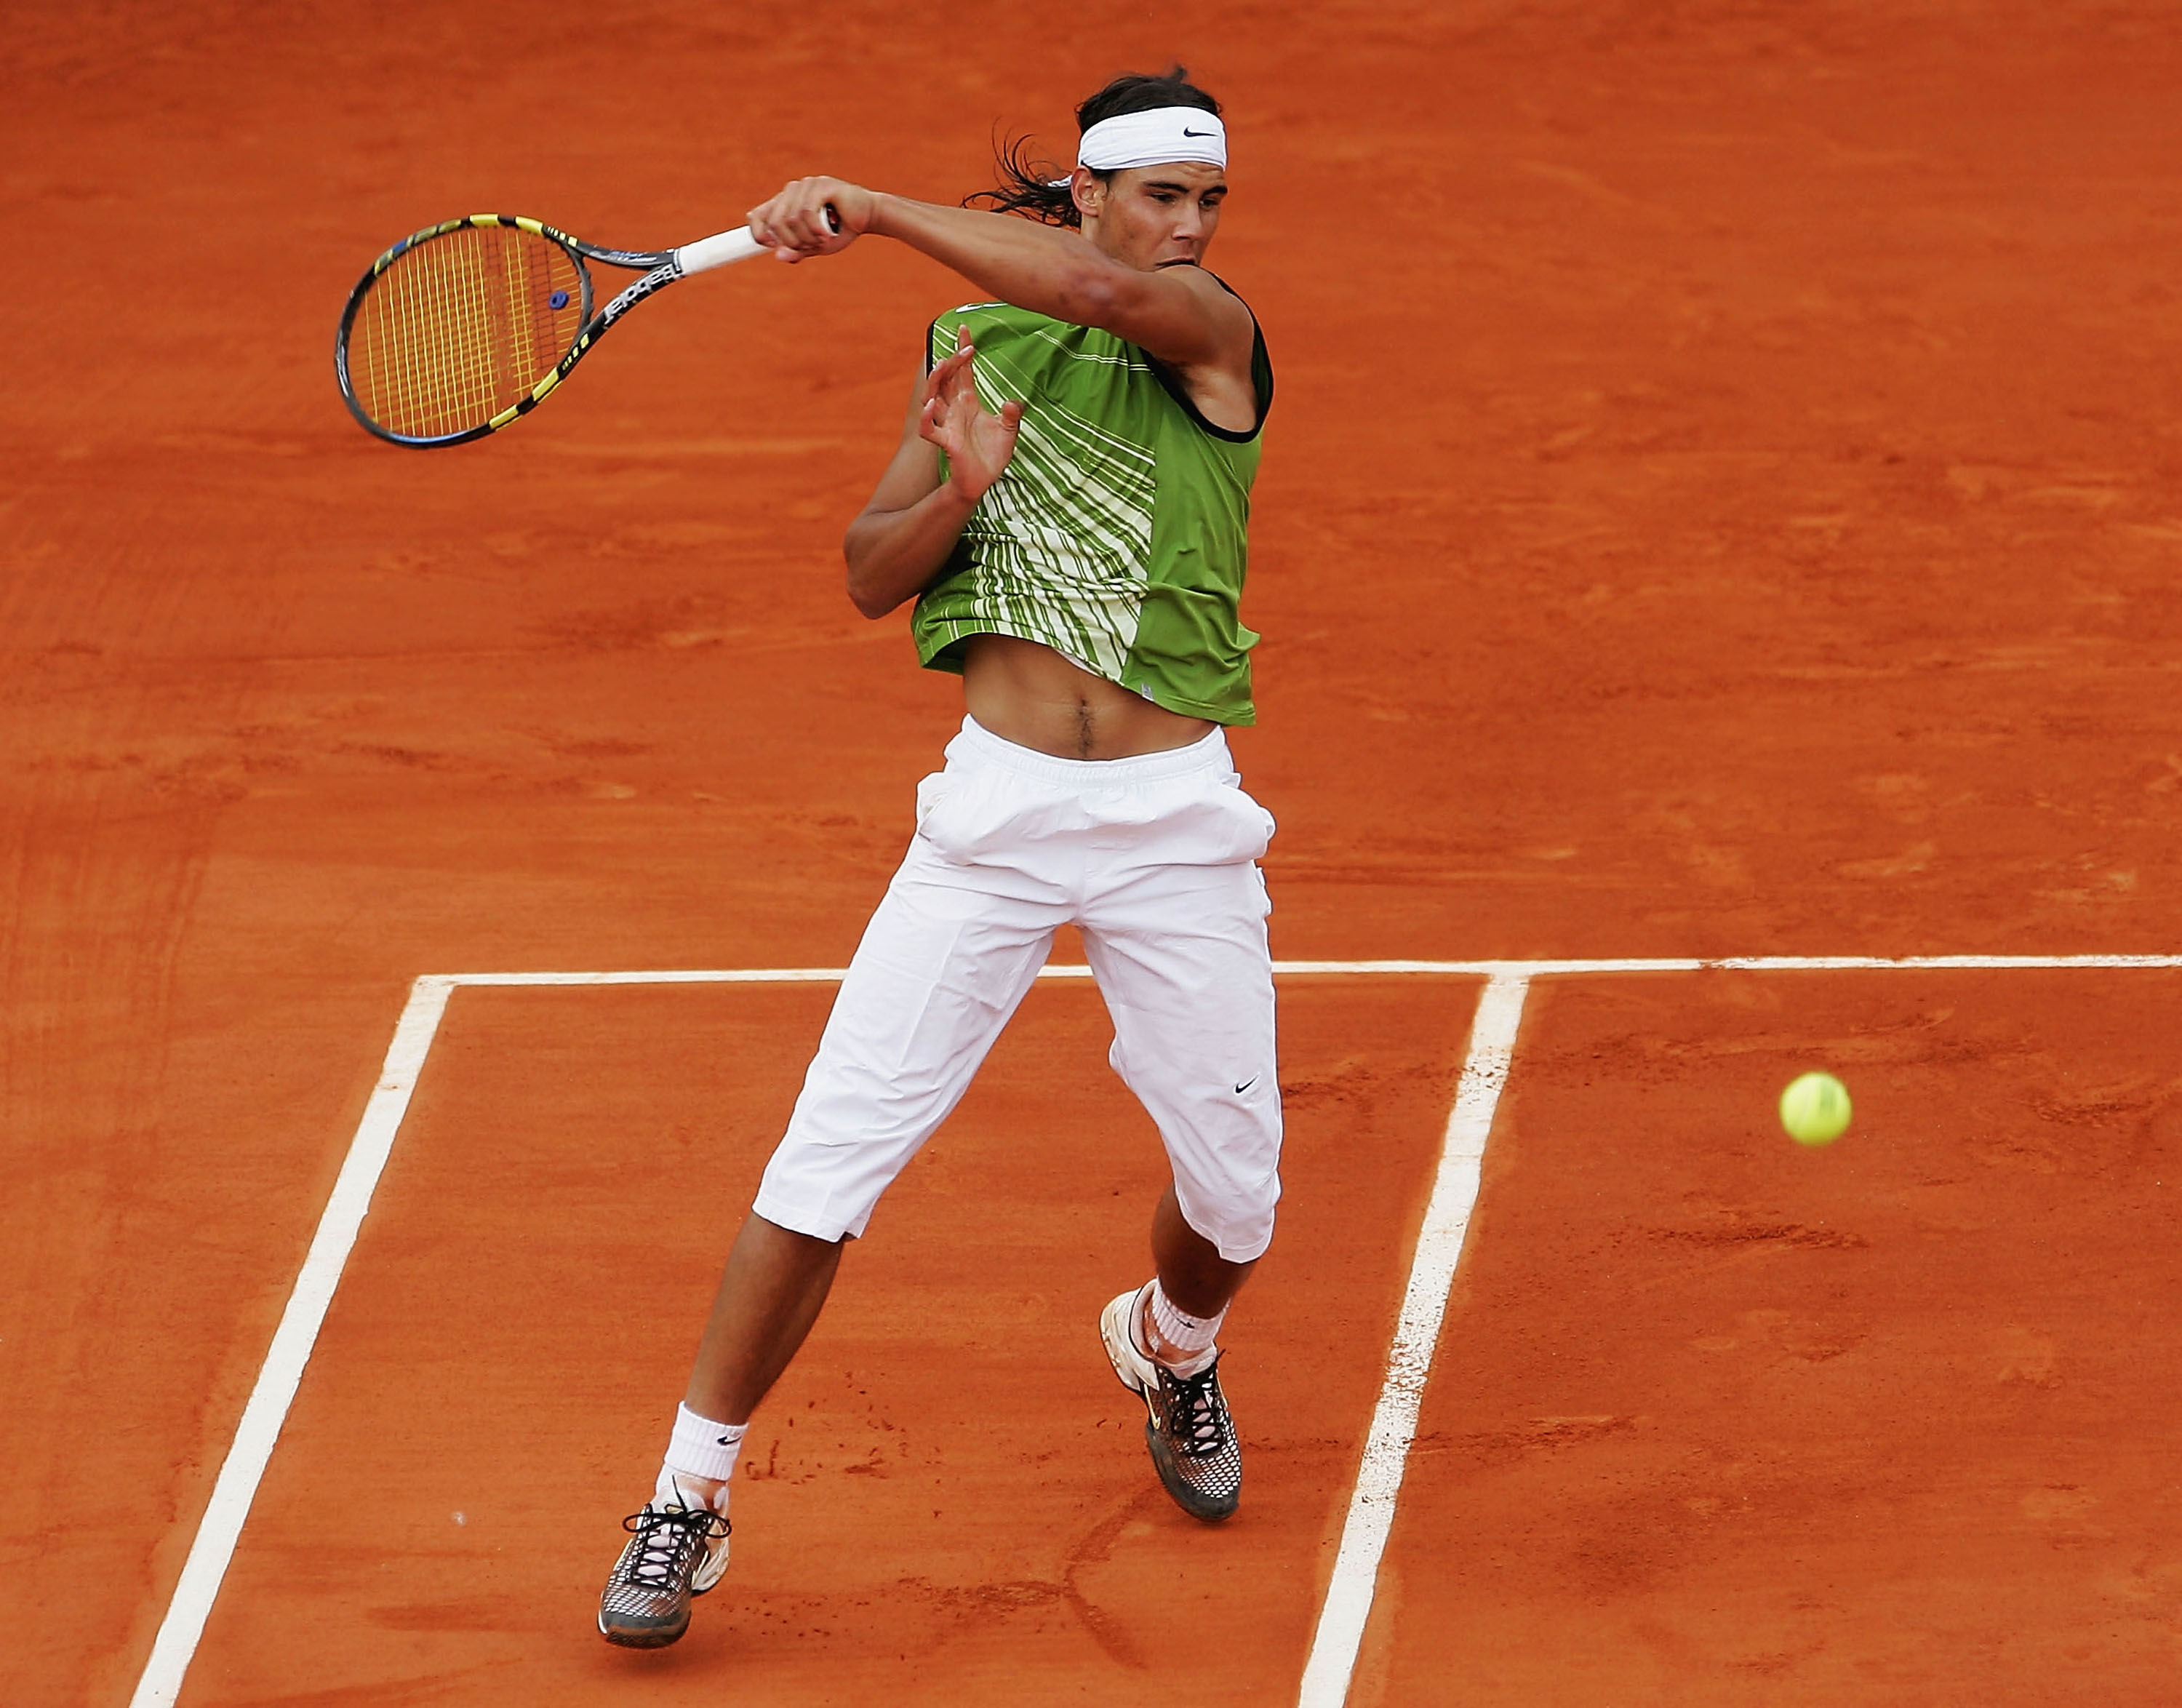 Nike put a green-spin on Rafa's signature style just in time for his maiden Grand Slam title at the French Open.